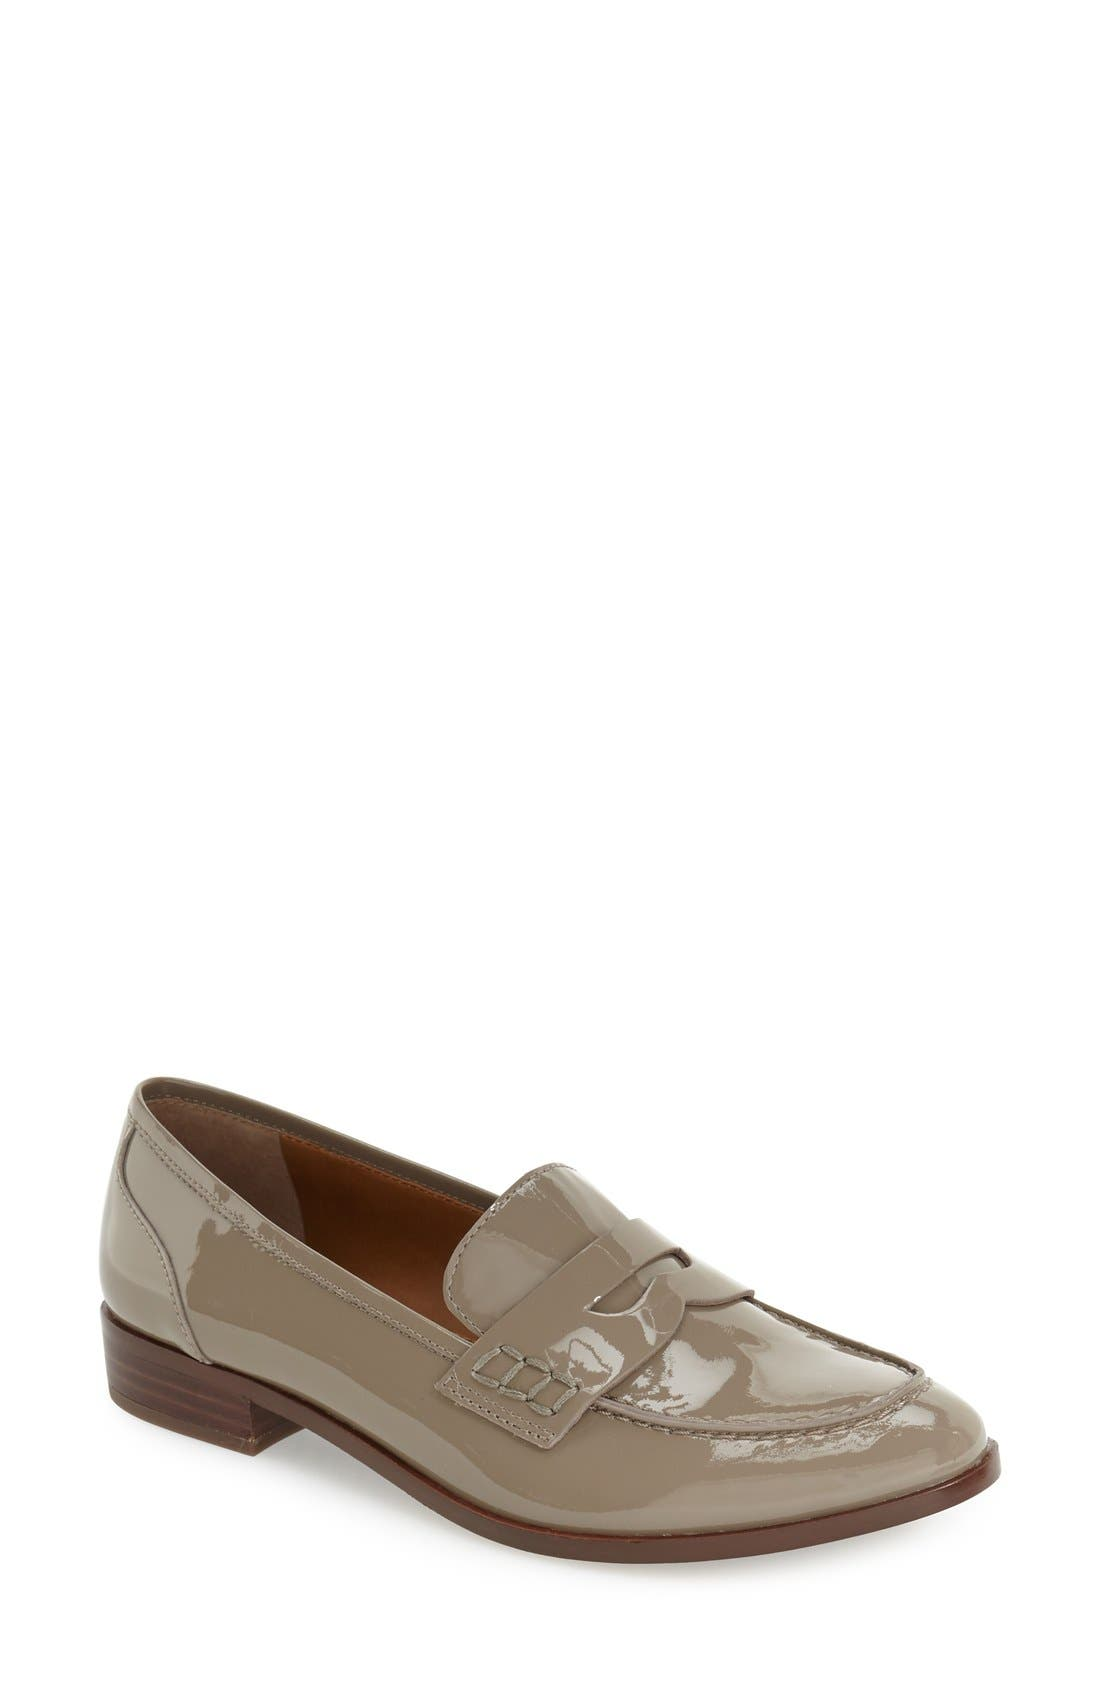 'Jolette' Penny Loafer,                             Main thumbnail 12, color,